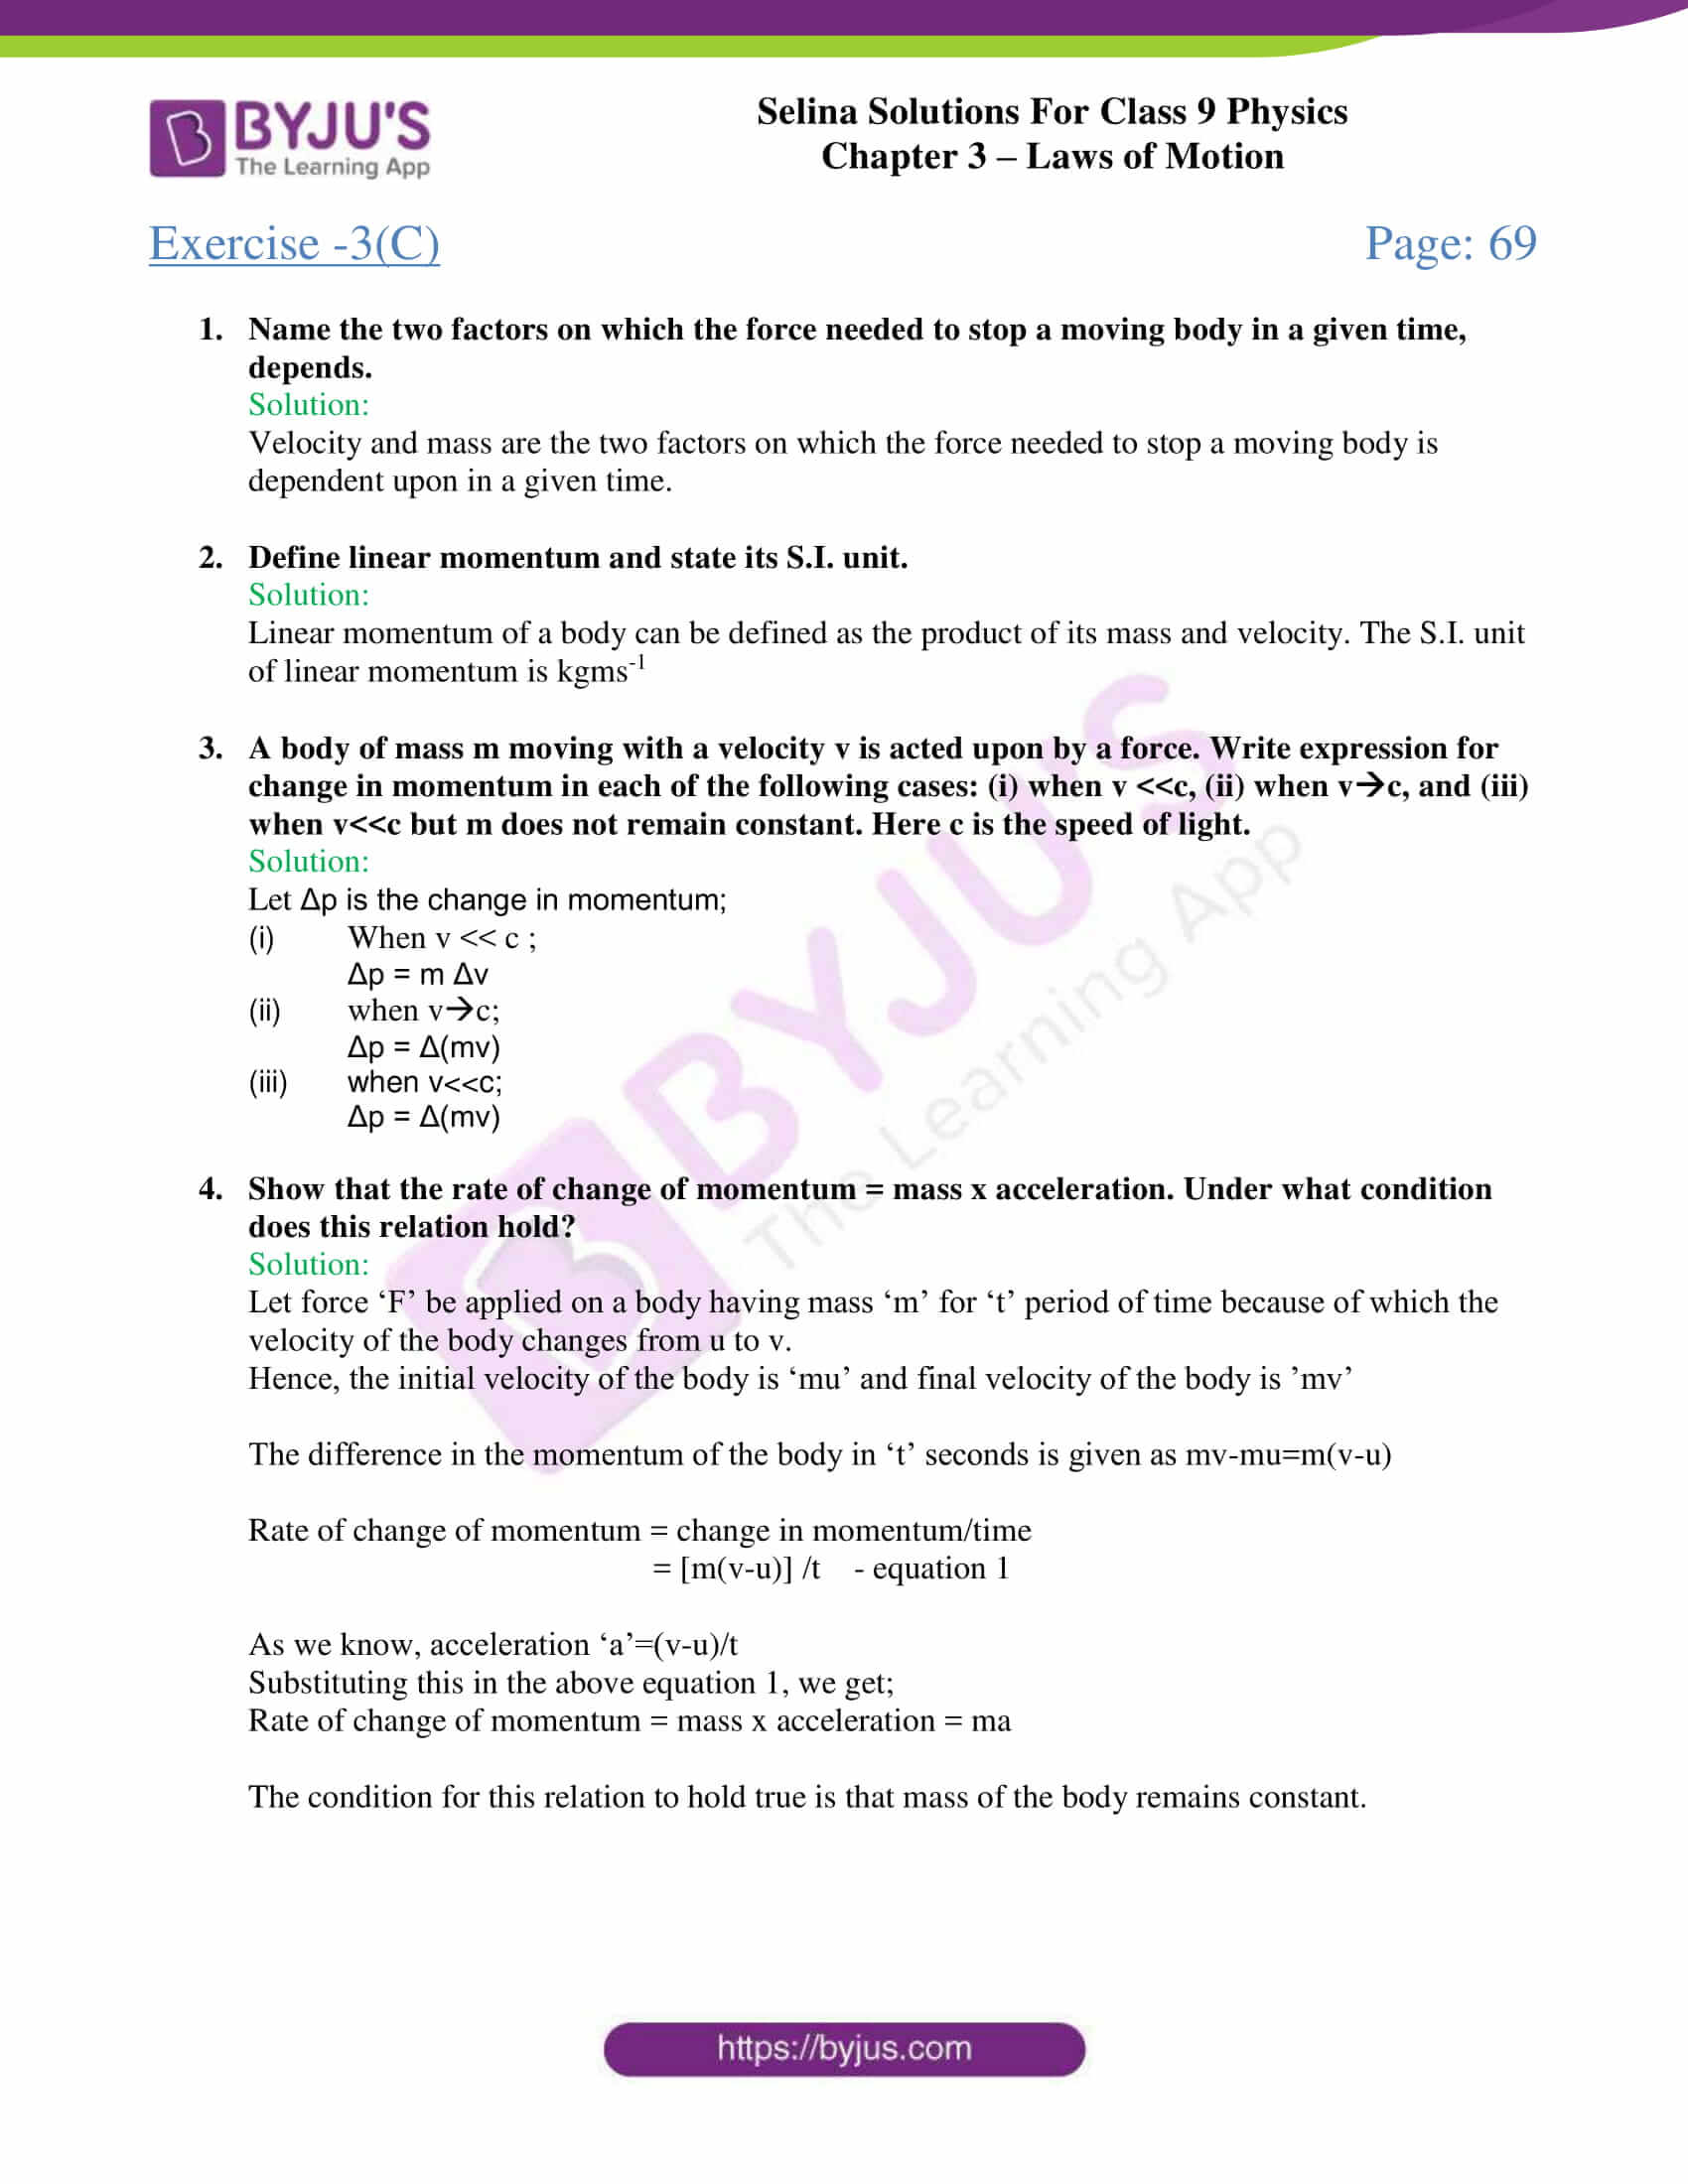 selina solutions class 9 physics chapter 3 Laws of Motion part 10